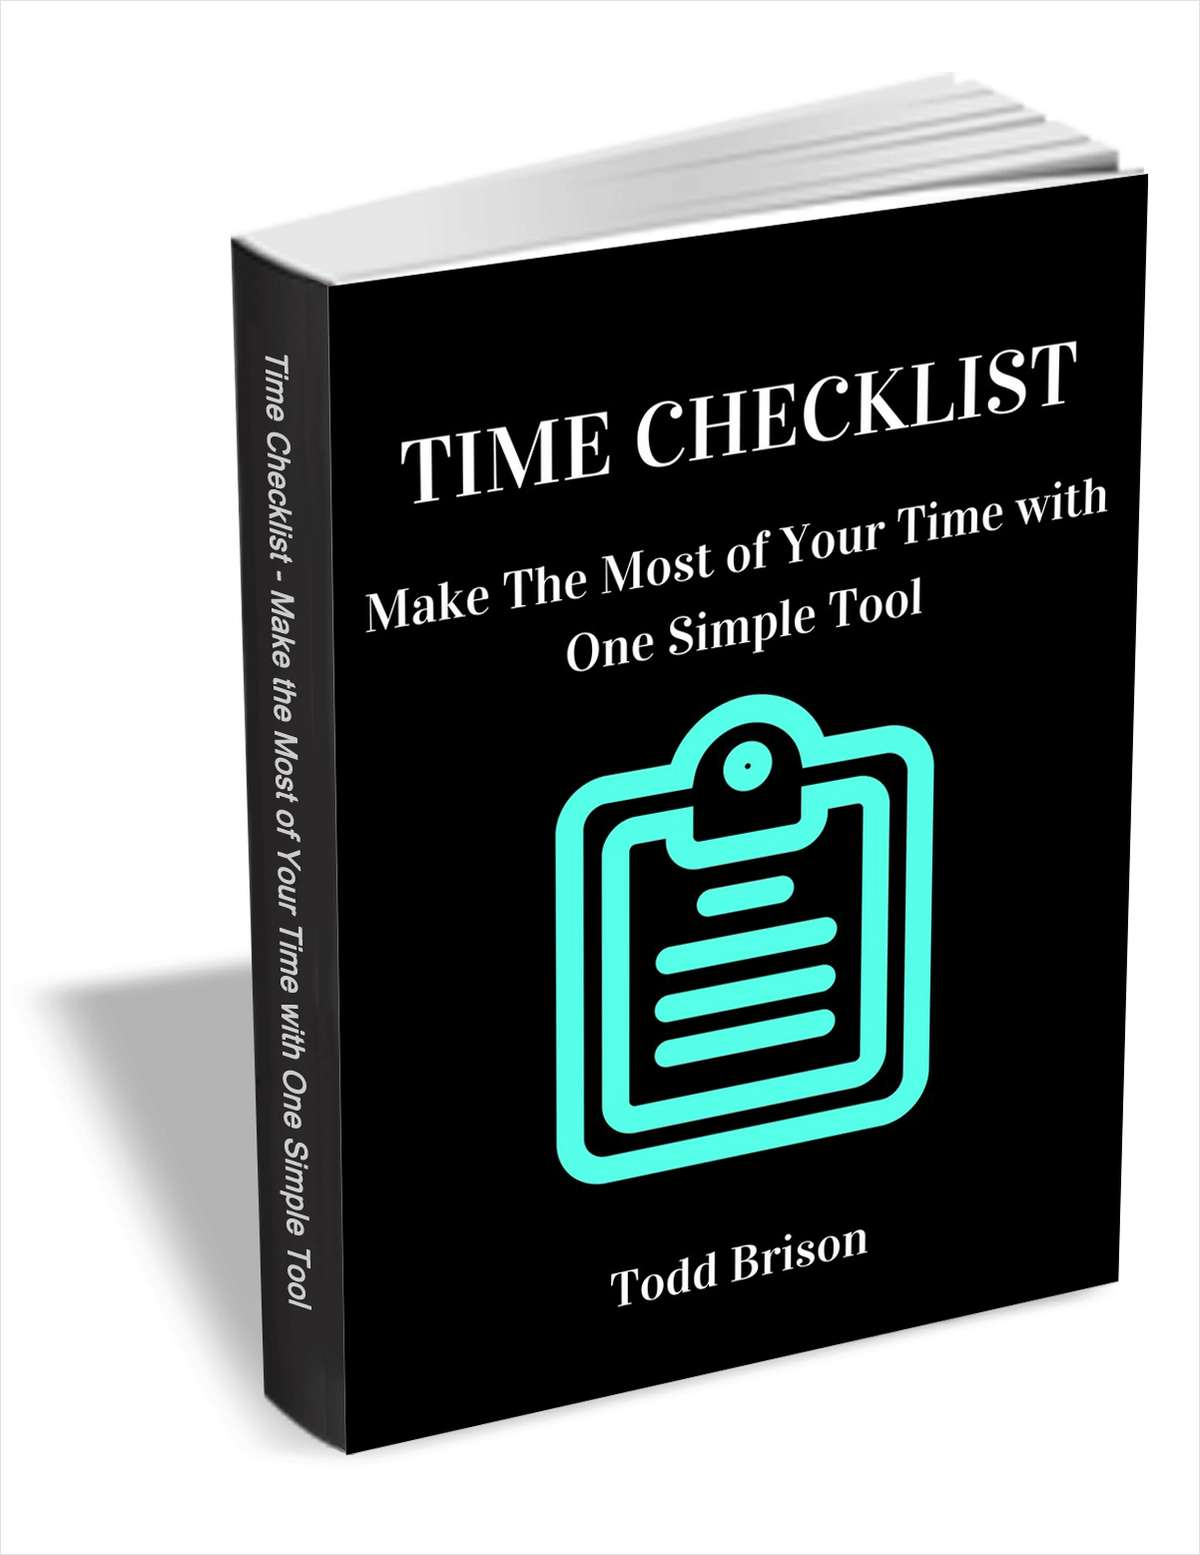 Time Checklist - Make the Most of Your Time with One Simple Tool